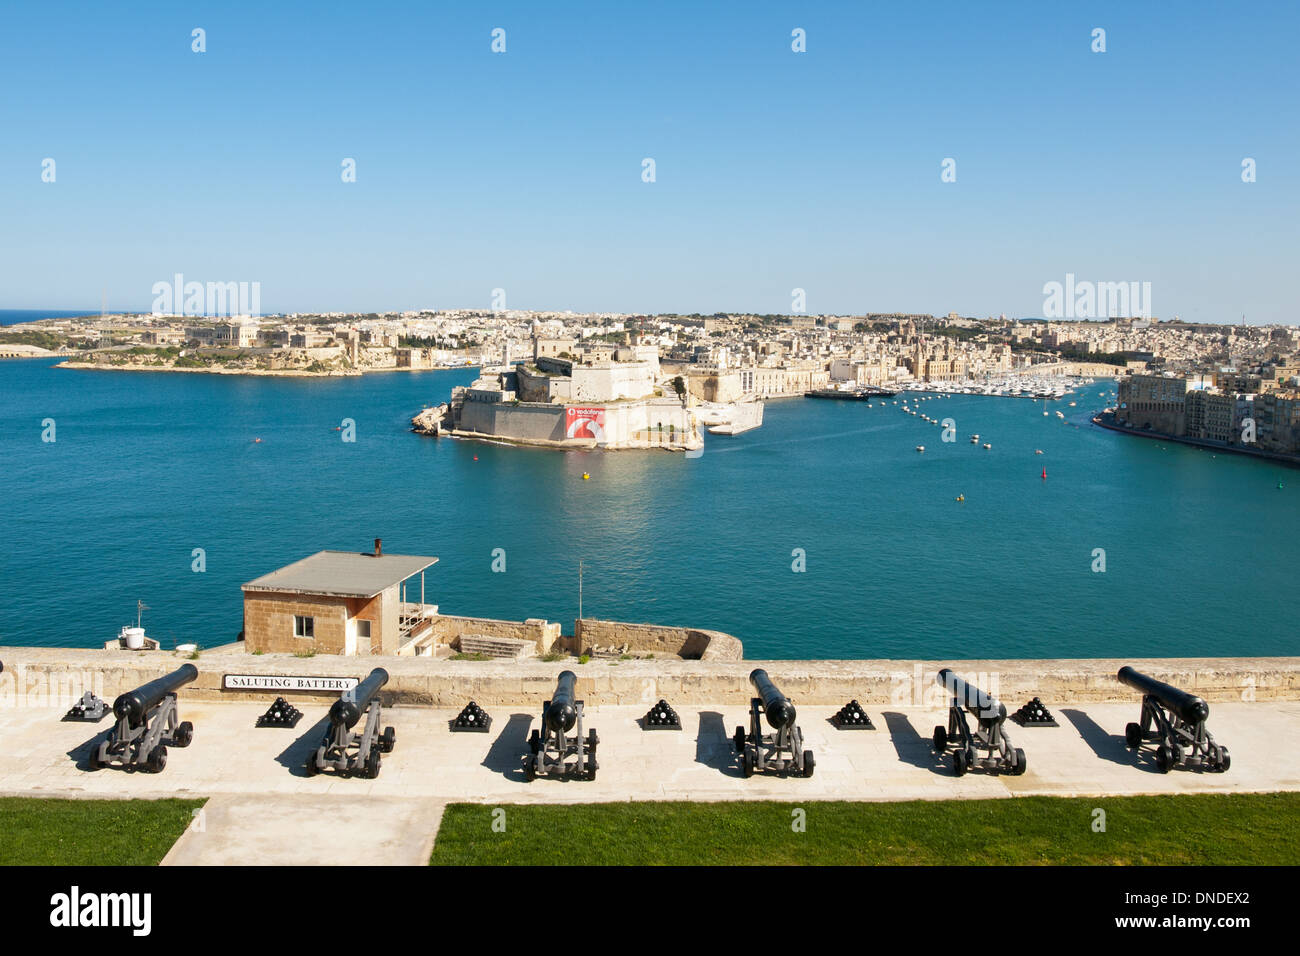 A view of the Saluting Battery of cannons at the Upper Barrakka Gardens in Valletta, Malta. - Stock Image